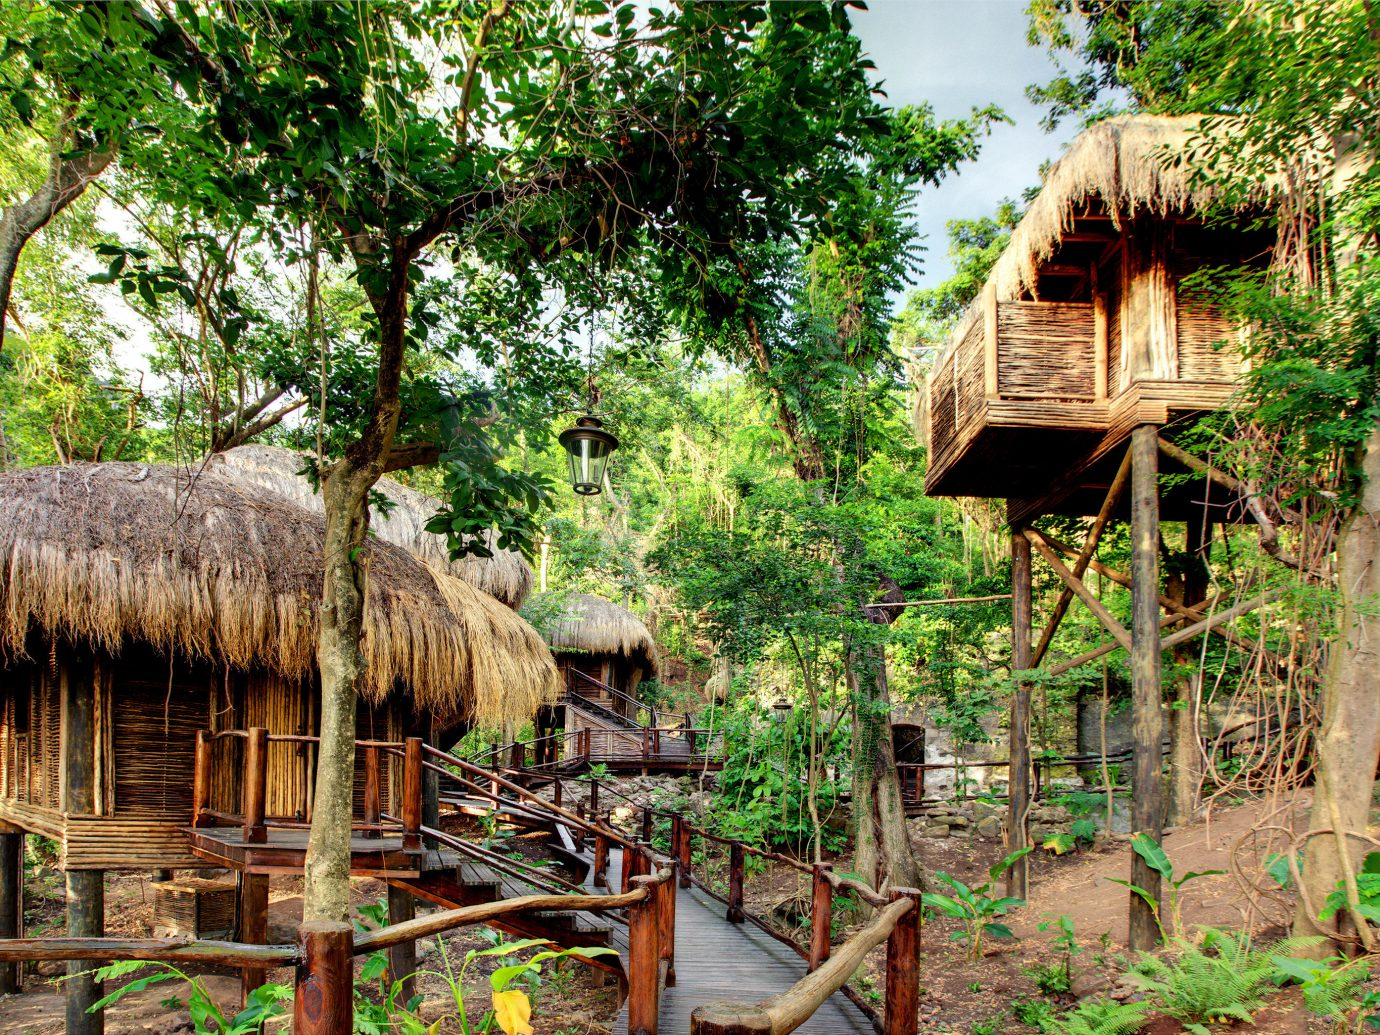 Architecture Buildings Design Exterior Family Hotels Living Luxury Resort Romance tree outdoor hut building botany Jungle wooden Forest rural area Village rainforest wood house flower tree house Garden outdoor structure old plant area surrounded lush wooded